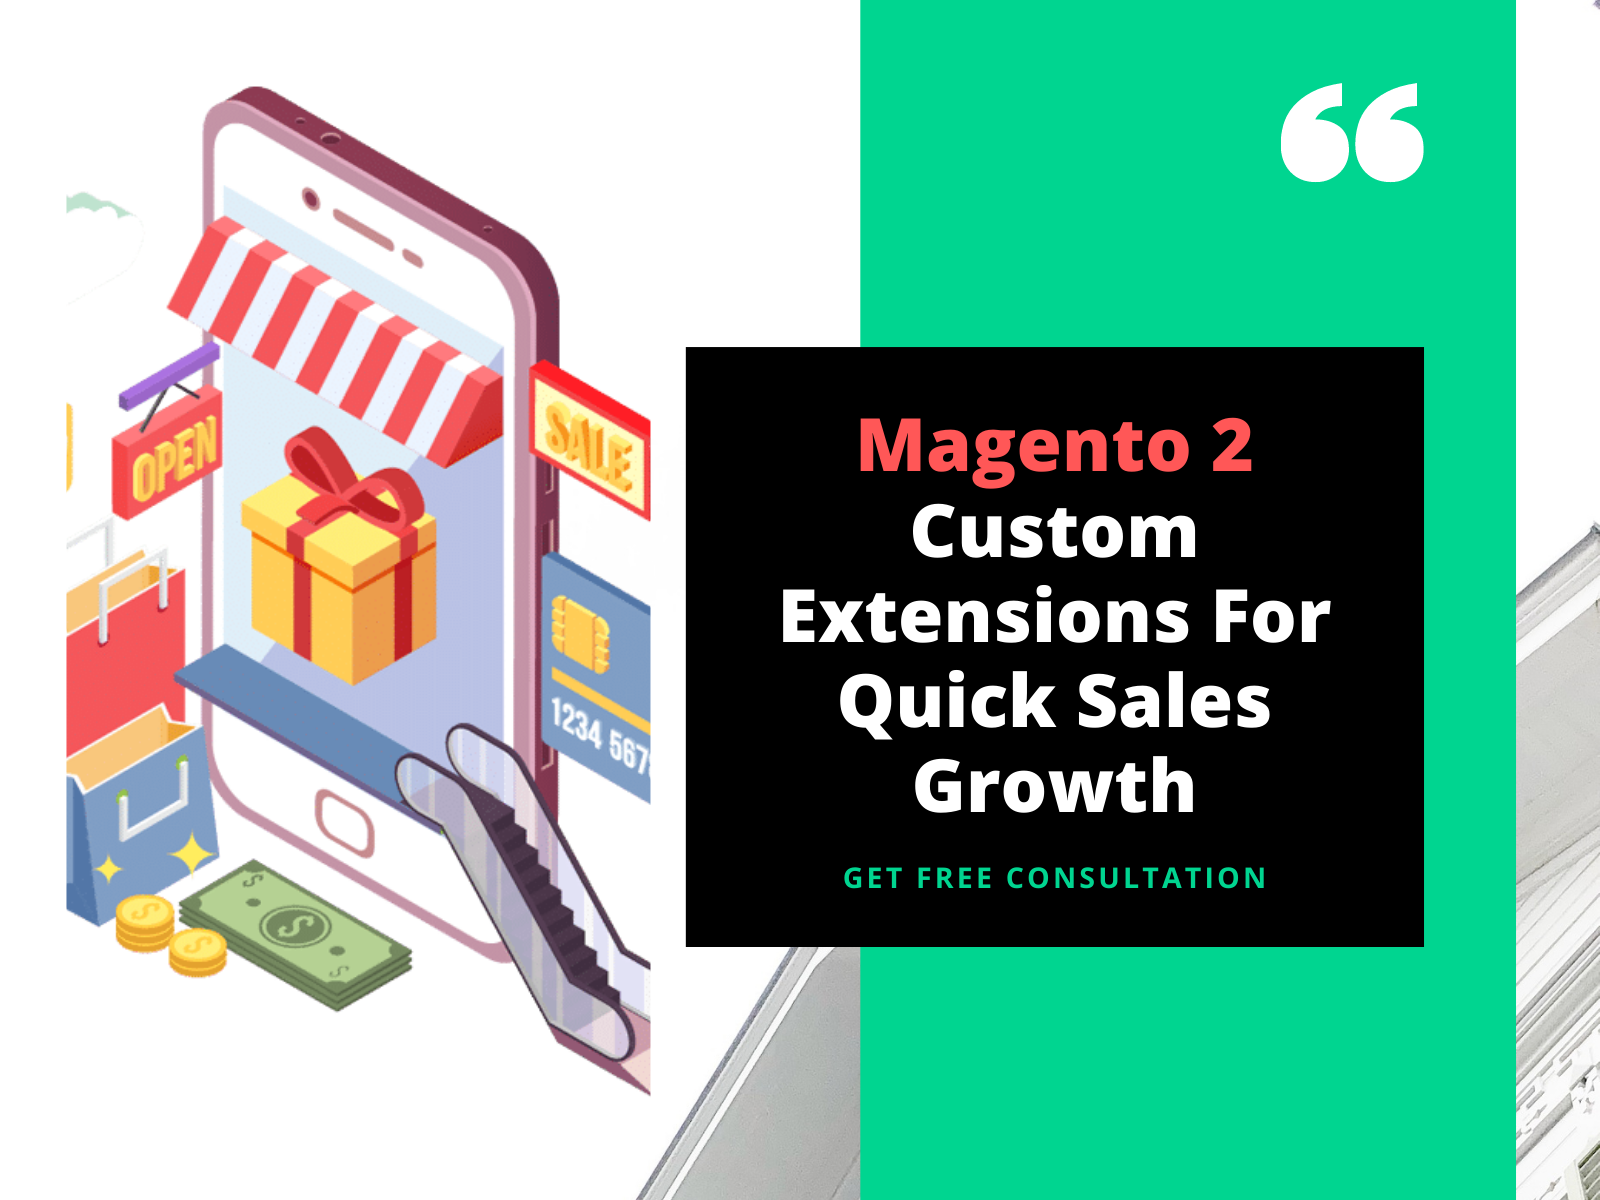 Magento 2 Custom Extensions For Quick Sales Growth